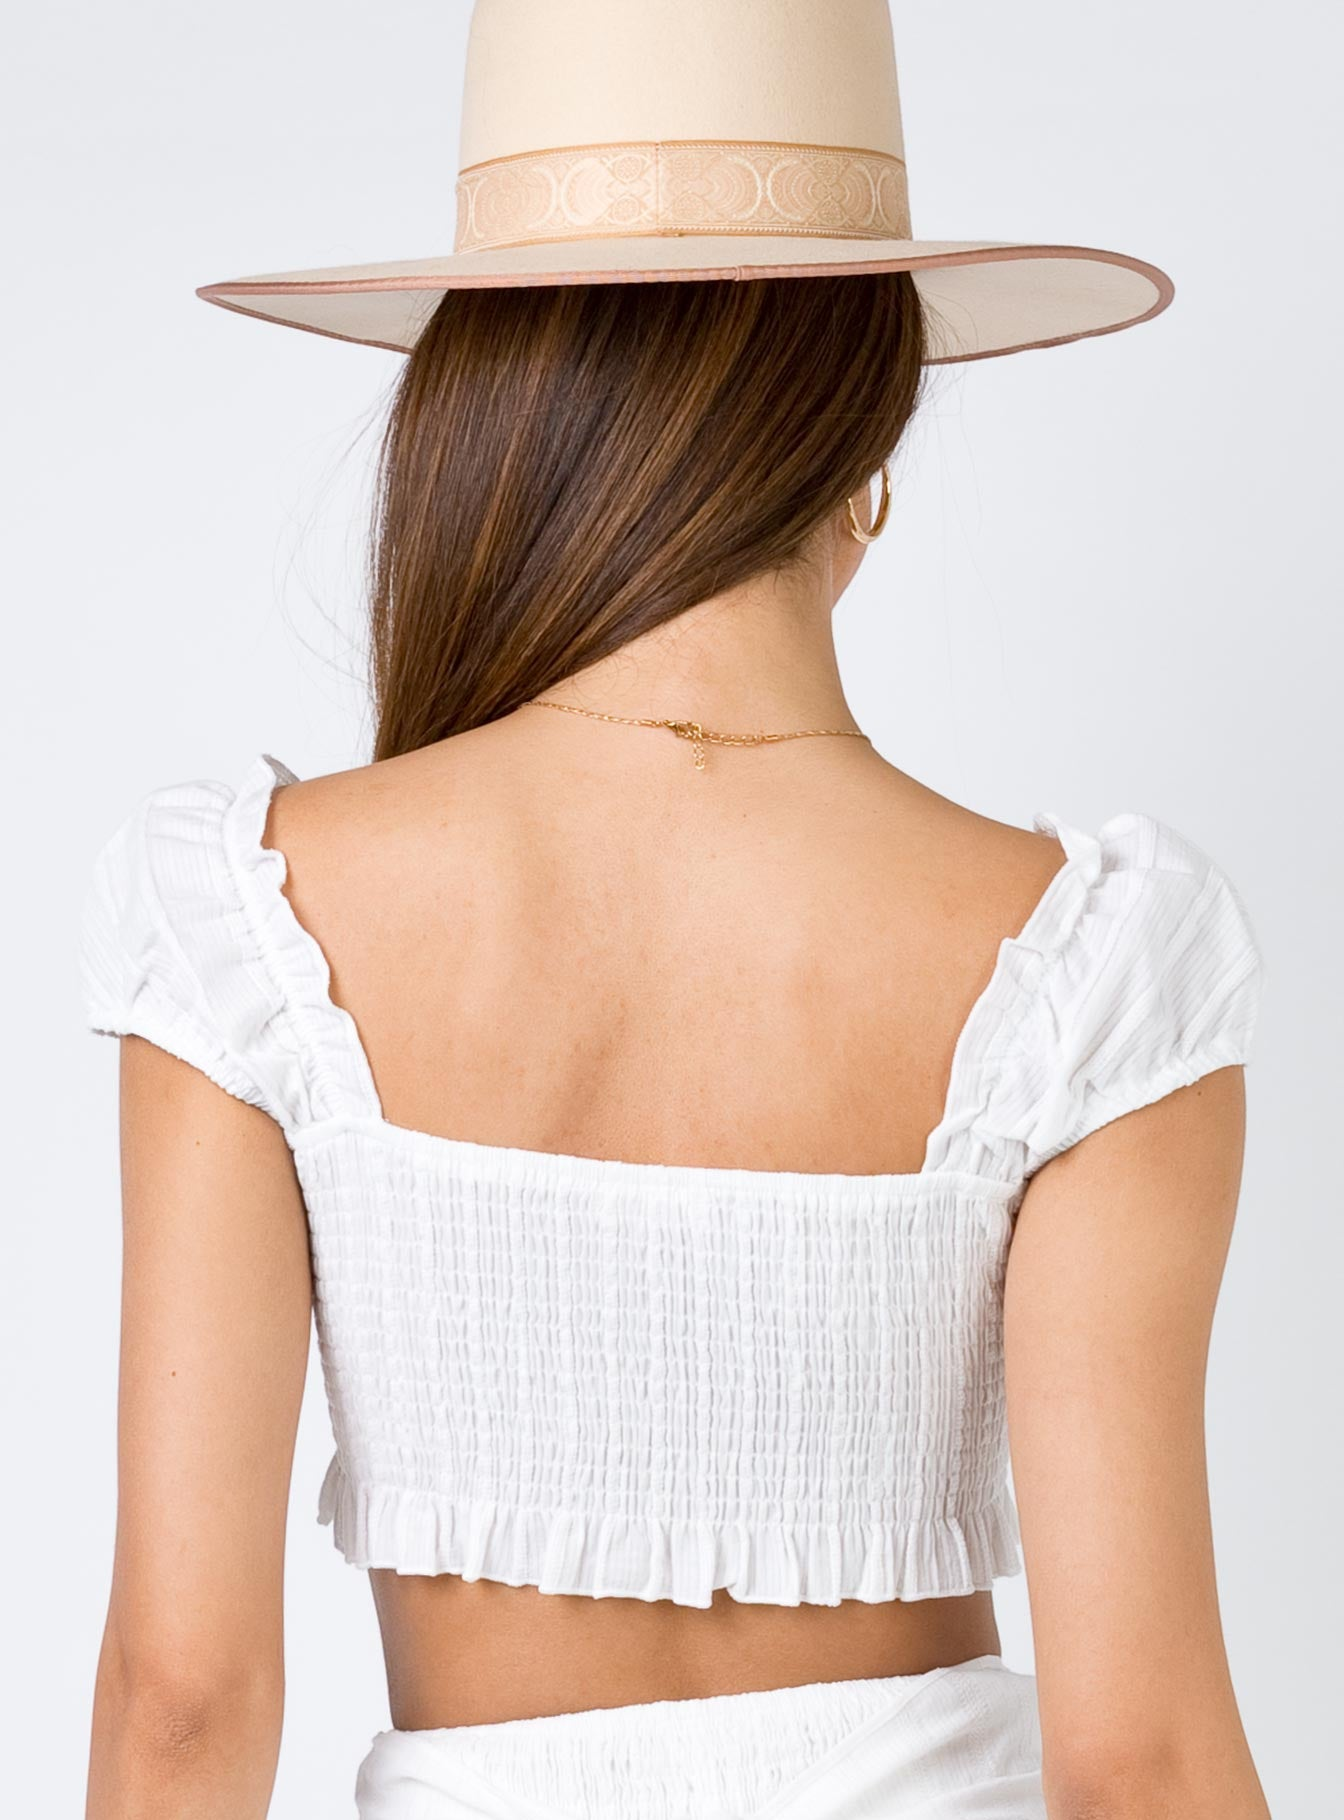 Sandstorm Crop Top White